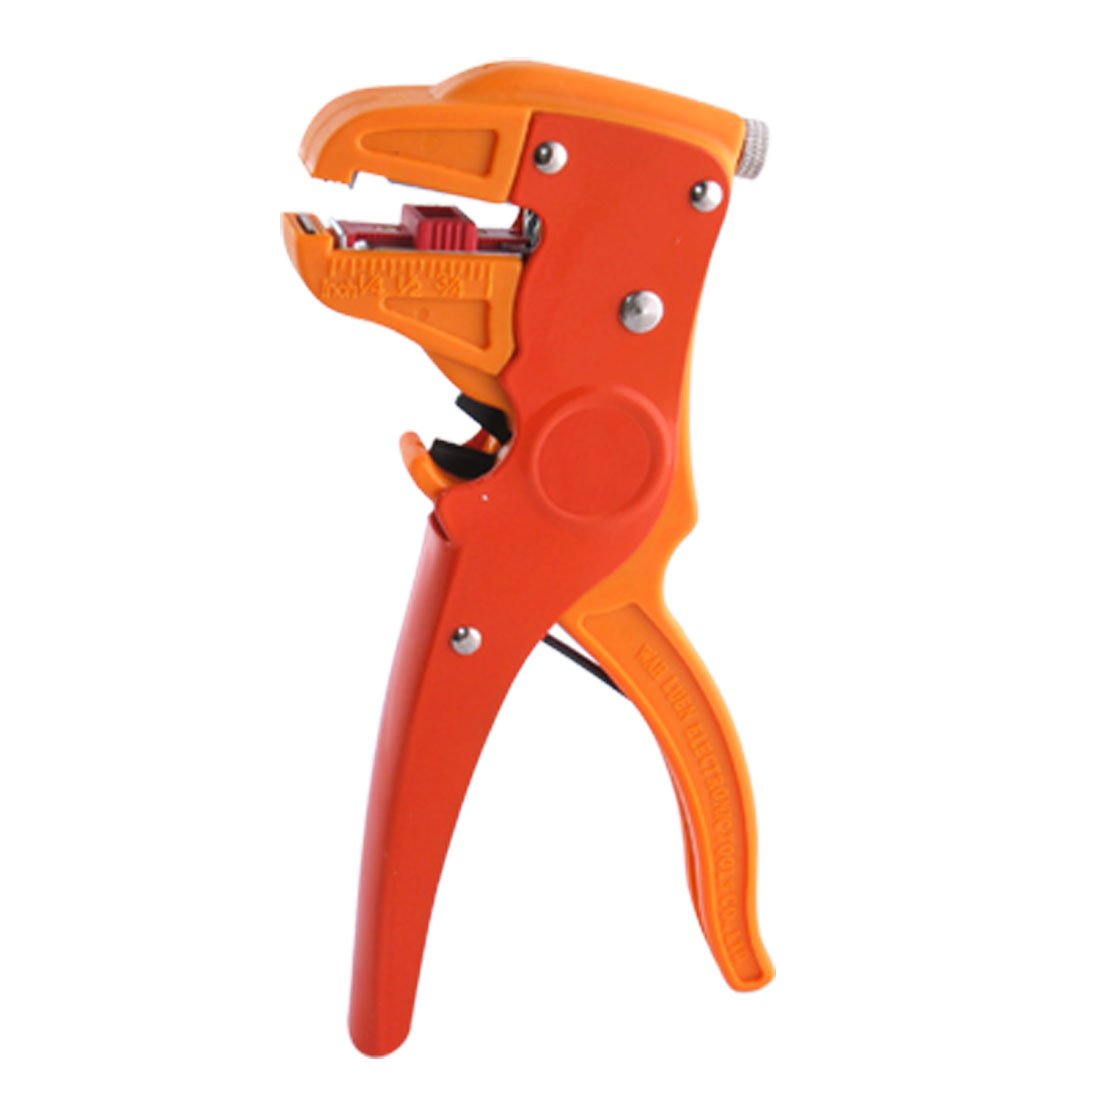 THGS Wire Cable Adjustable Stripping Cutting Cutter Tool Orange